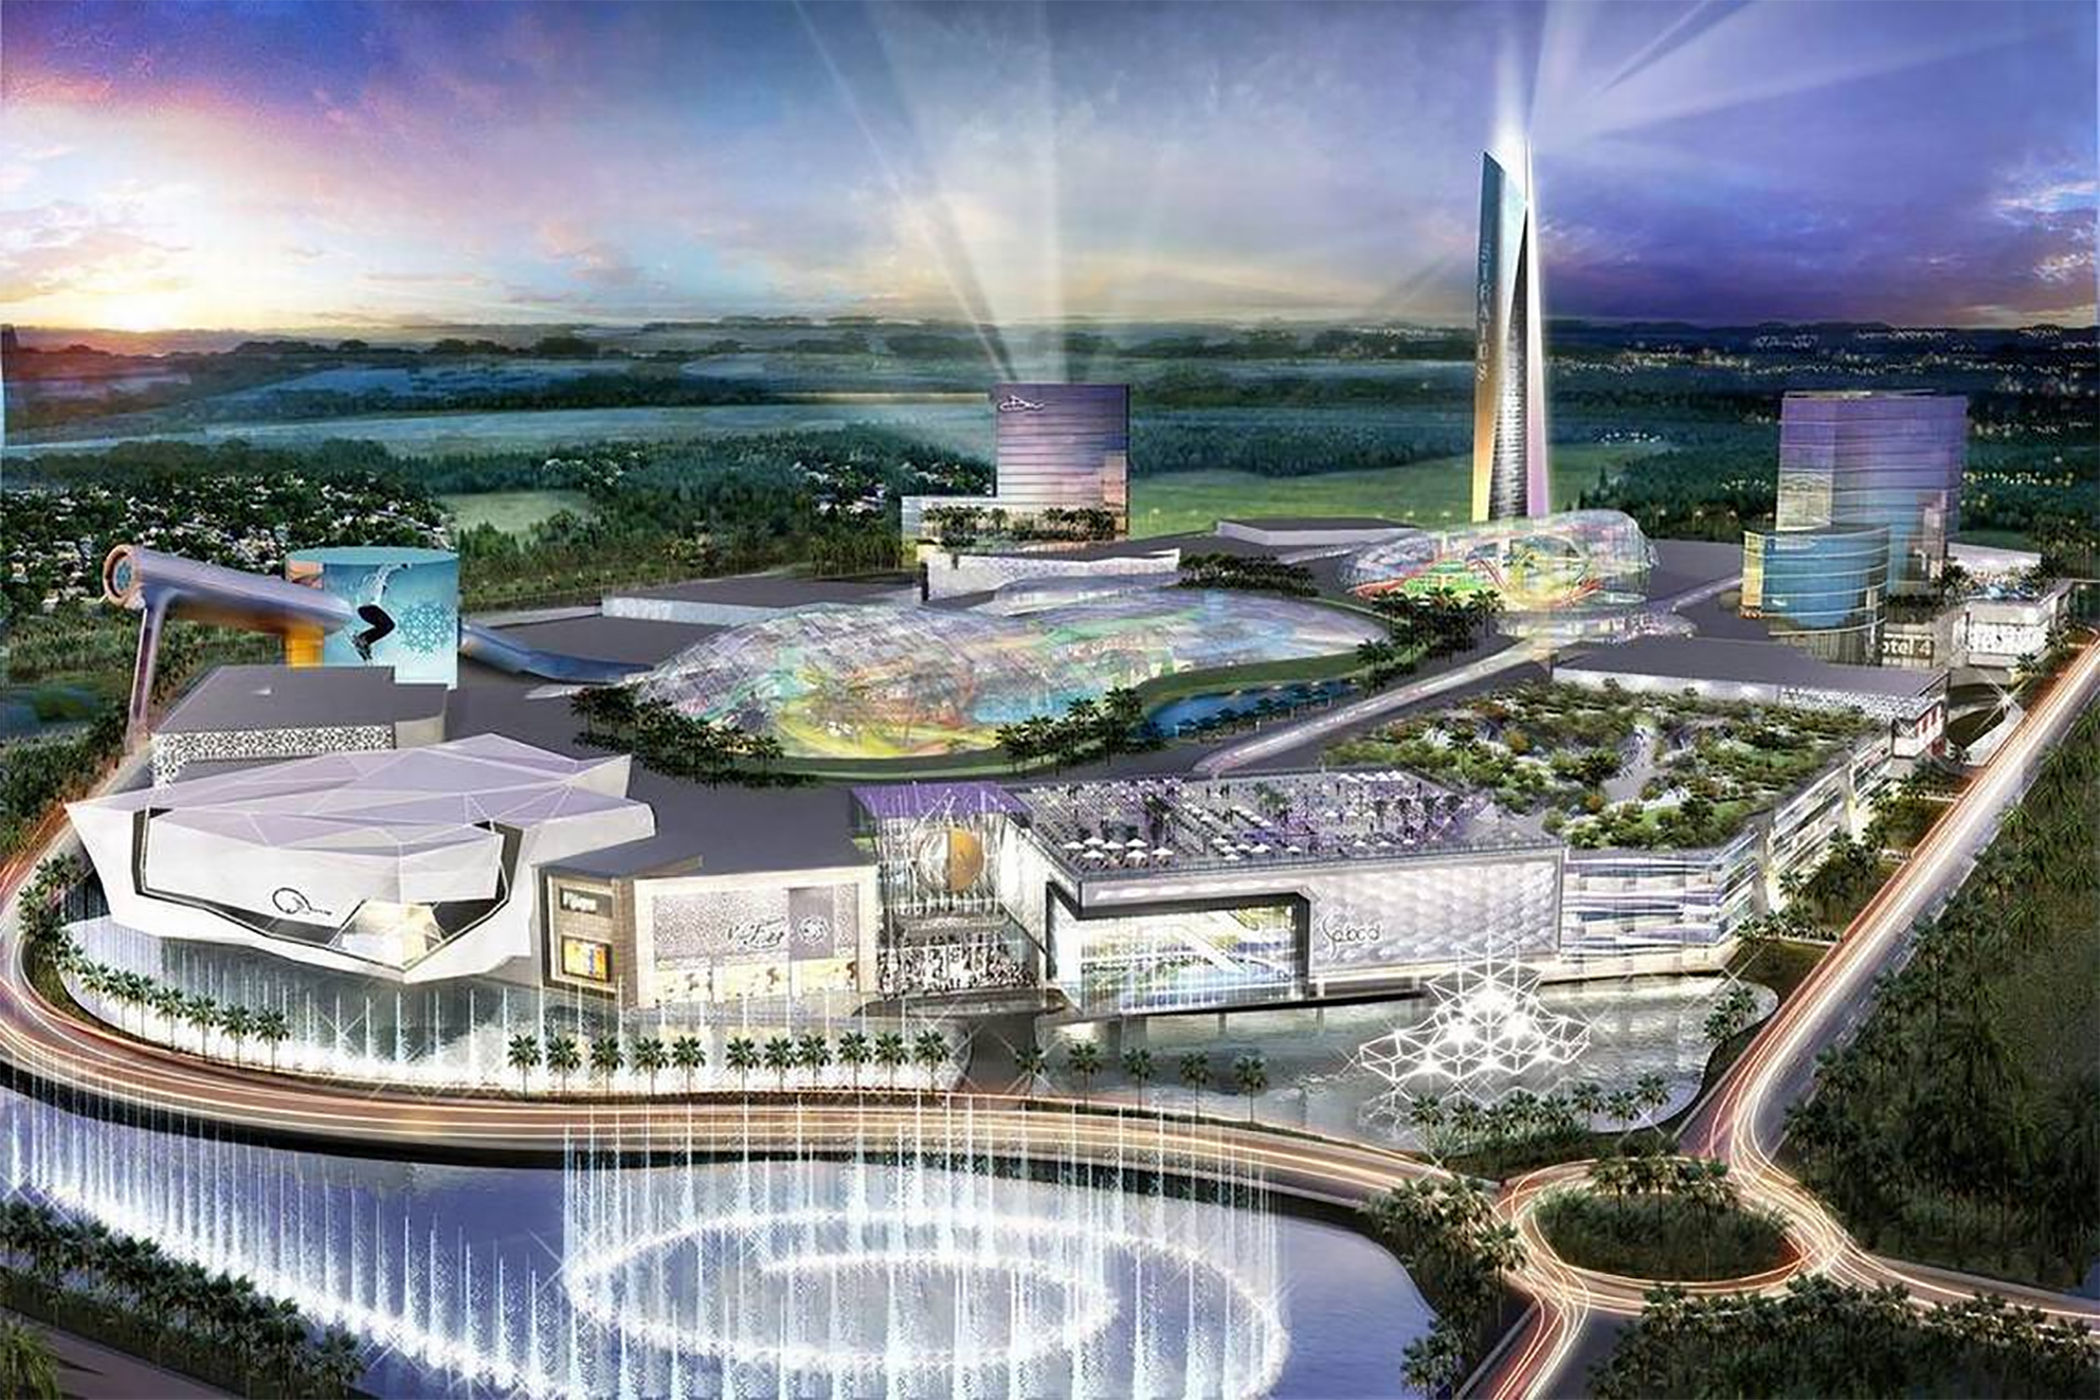 American Dream Miami is expected to draw 30 million visitors annually once it opens in 2025. (Triple Five Worldwide)